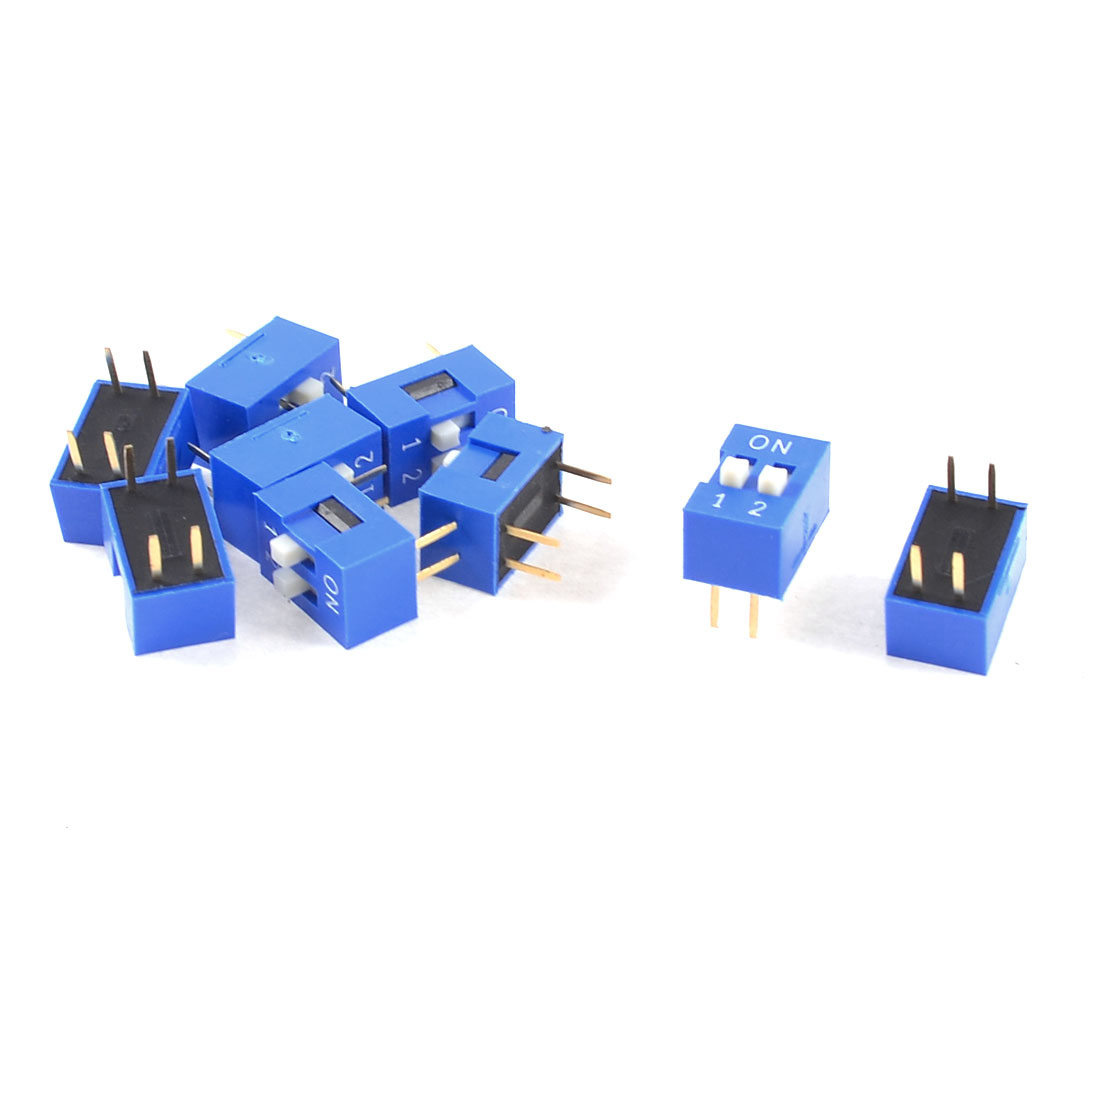 10 Pcs Blue Double Row 4 Pin 2 Positions 2.54mm Pitch DIP Switches